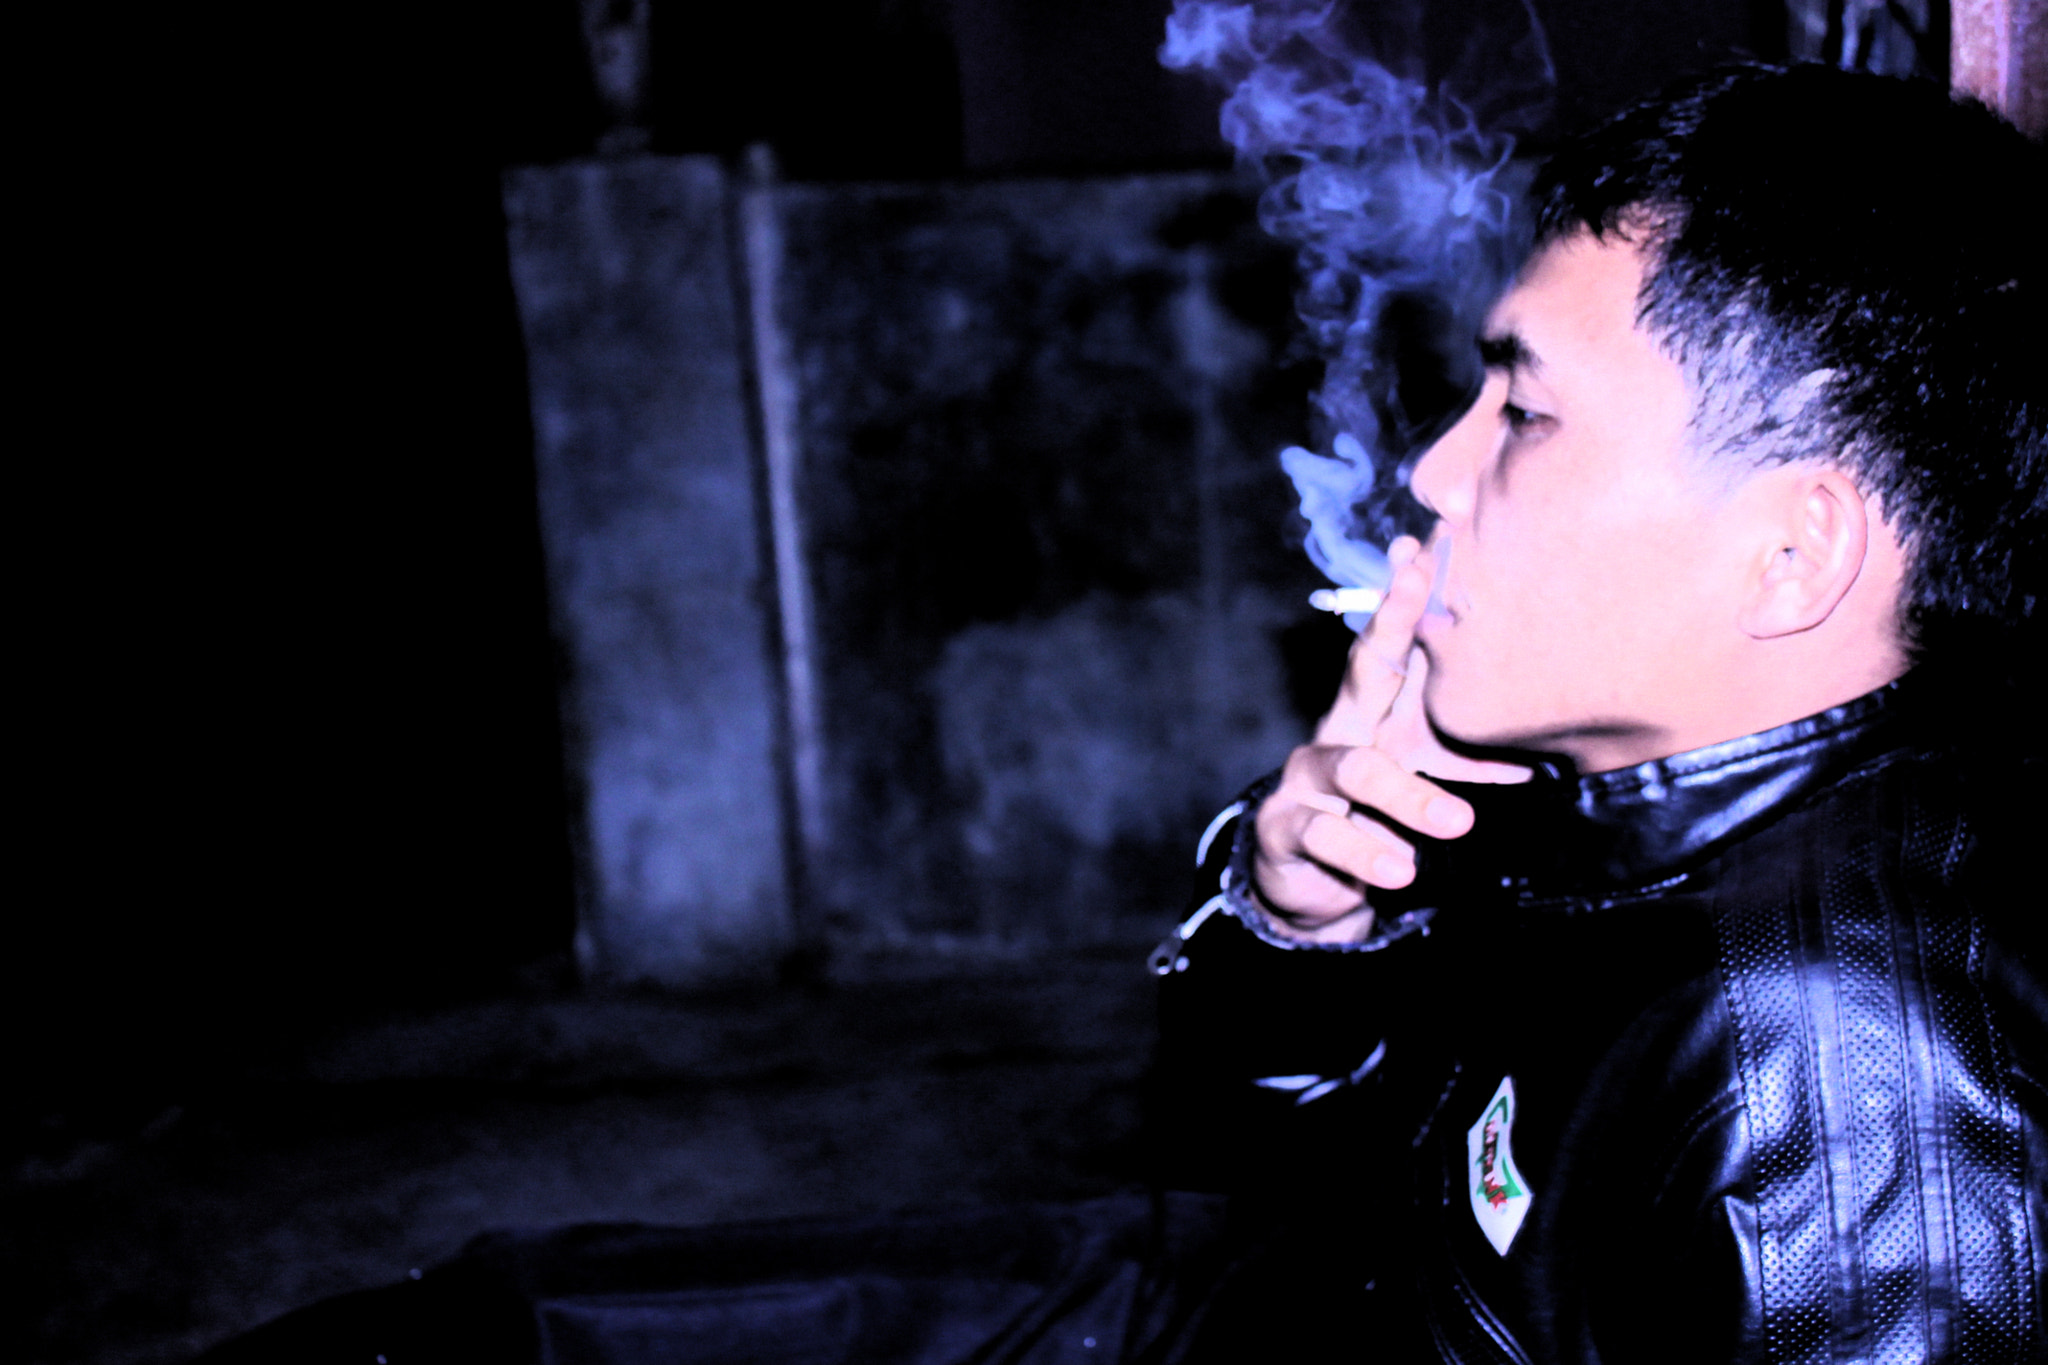 Photograph Smoking In The Dark by Sastra Nababan on 500px